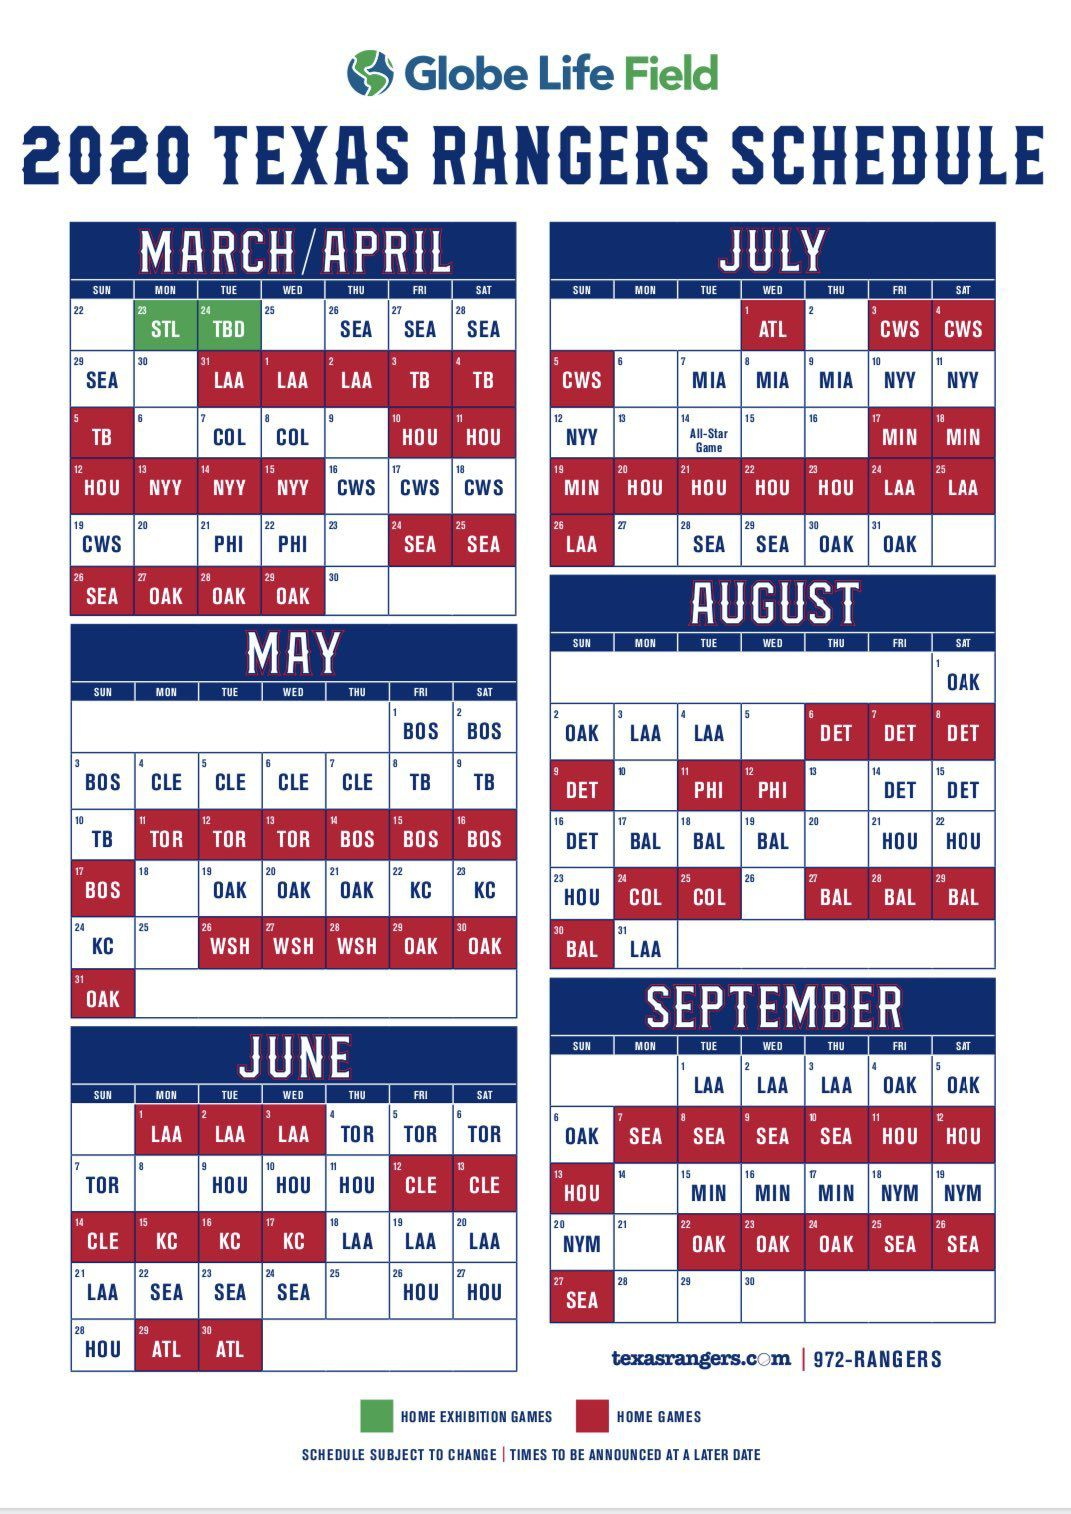 Rangers Home Schedule 2020 2020 Texas Rangers MLB schedule: Globe Life Park opens March 31